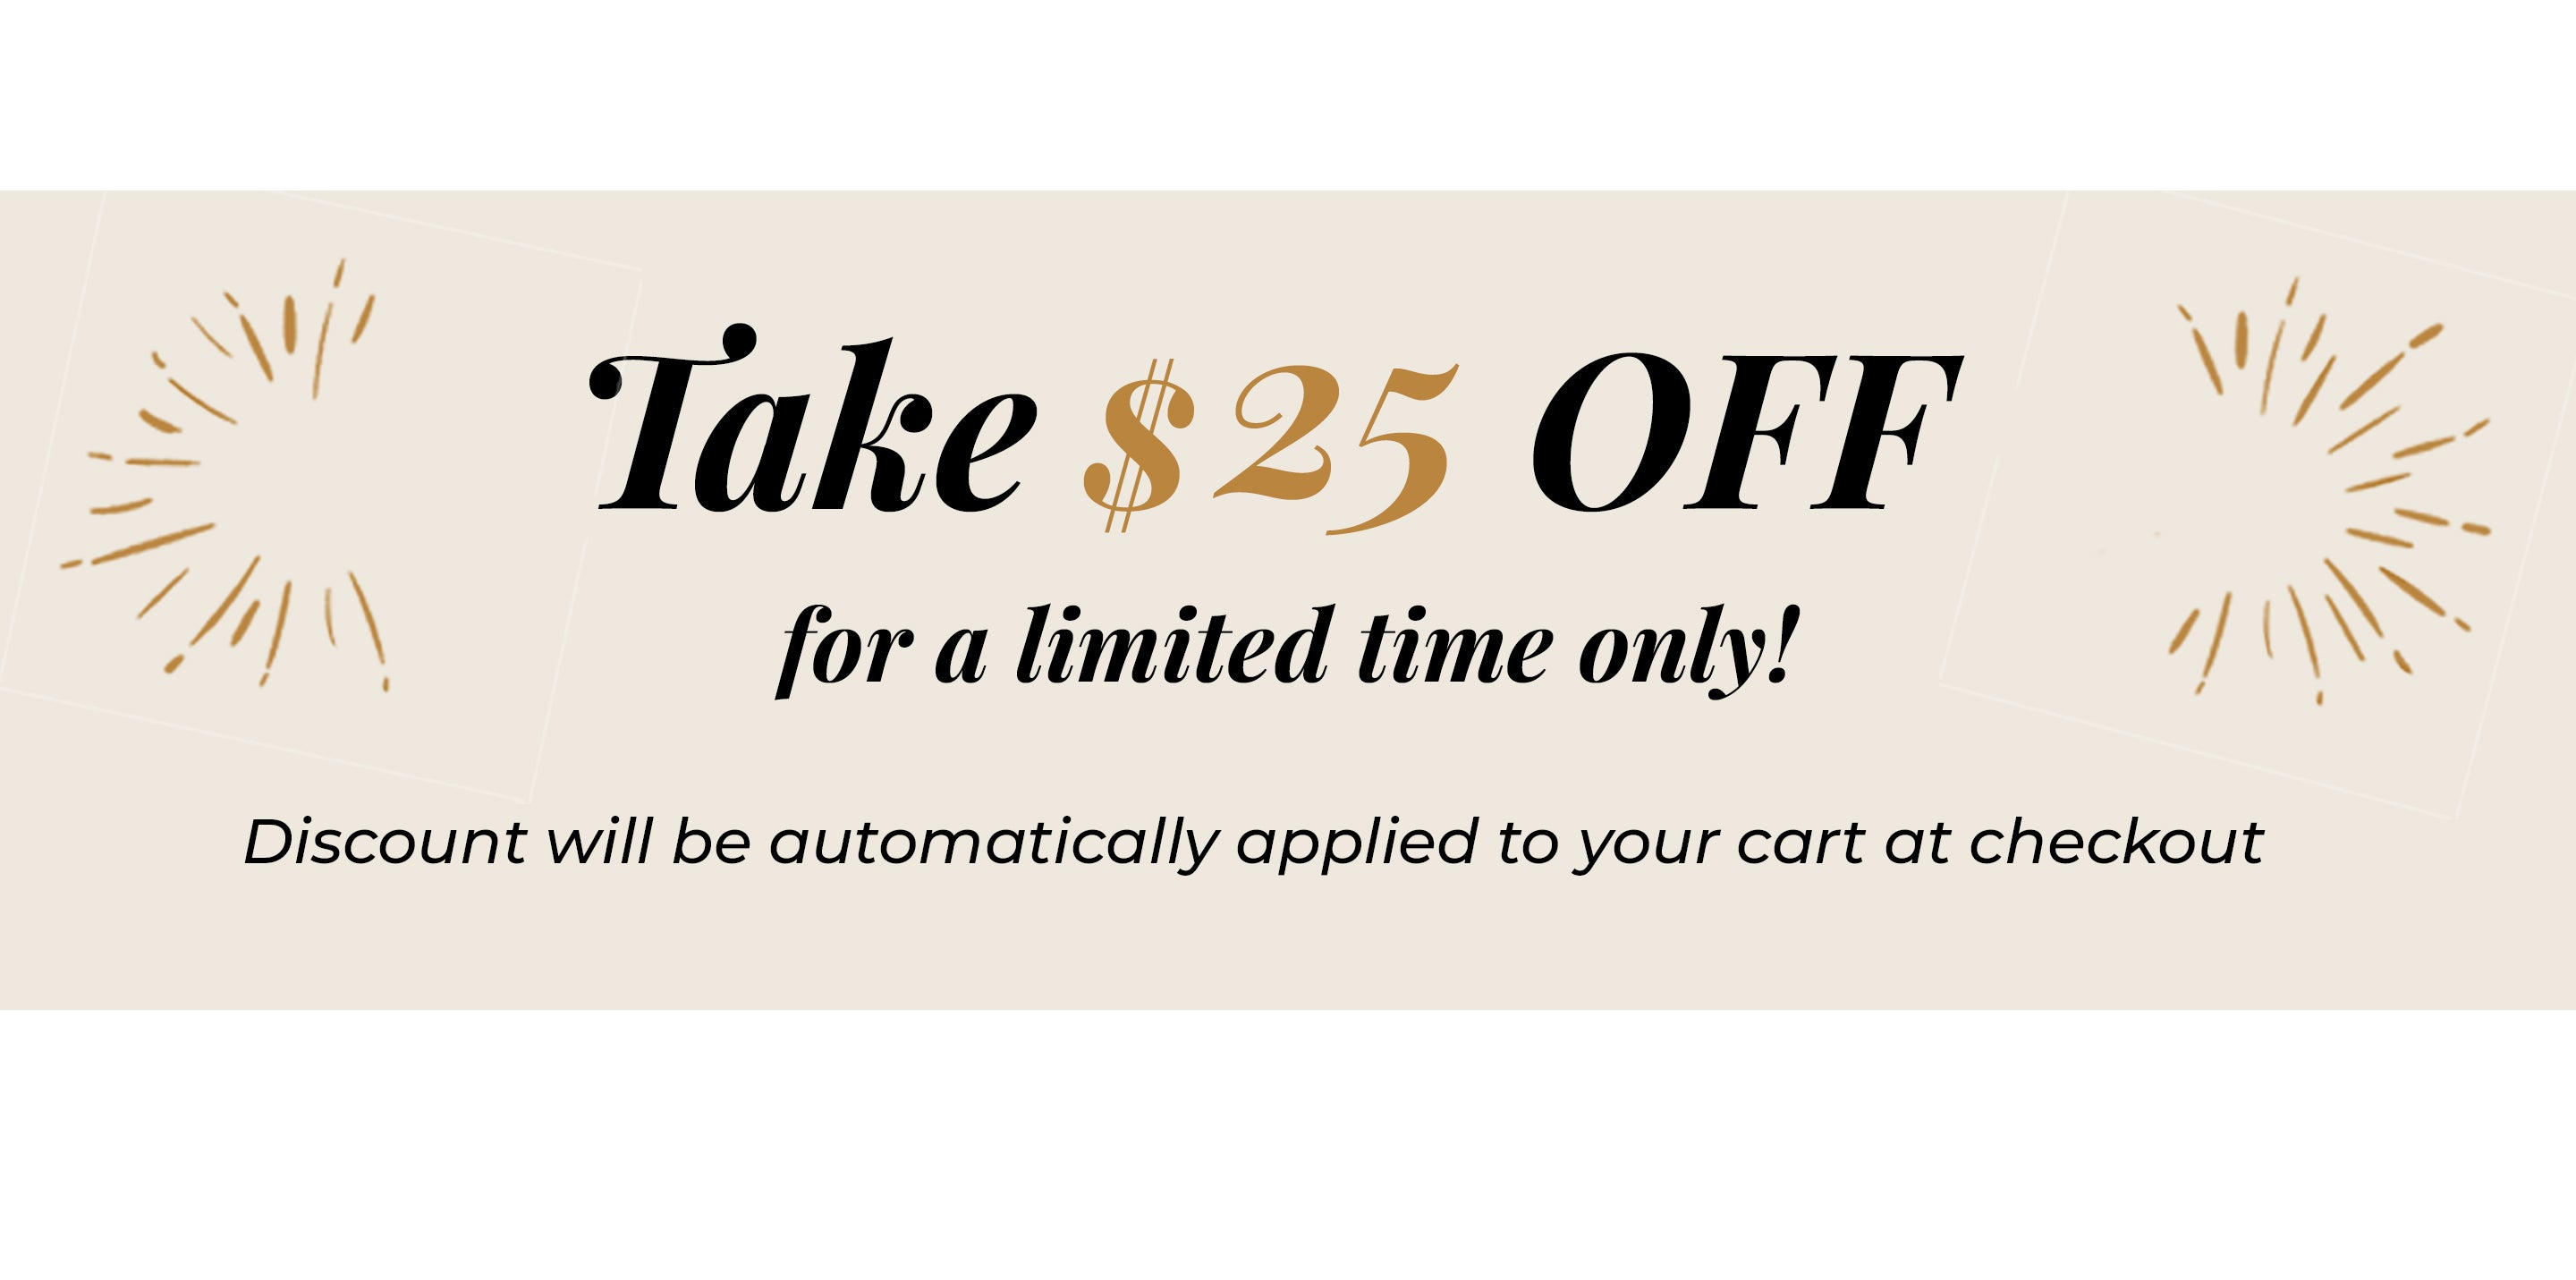 Take $25 OFF for a limited time! Discount will be applied to cart at checkout